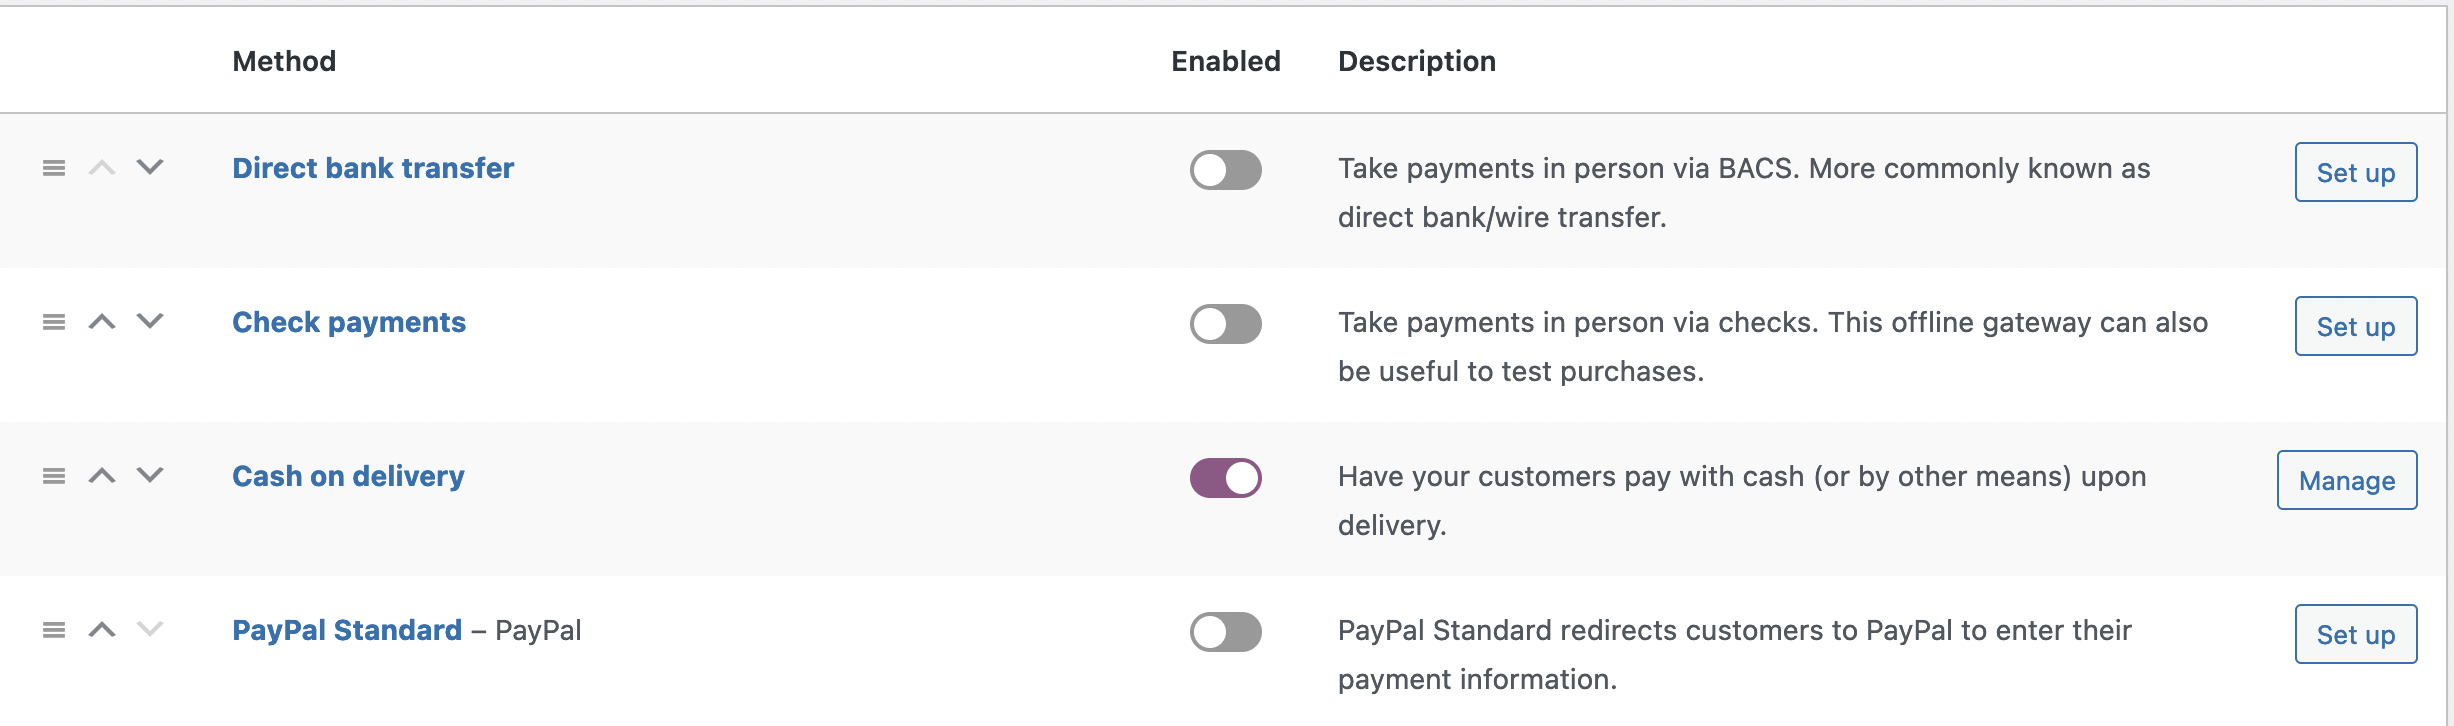 Screenshot showing settings needed for testing WooCommerce in Roboswarm